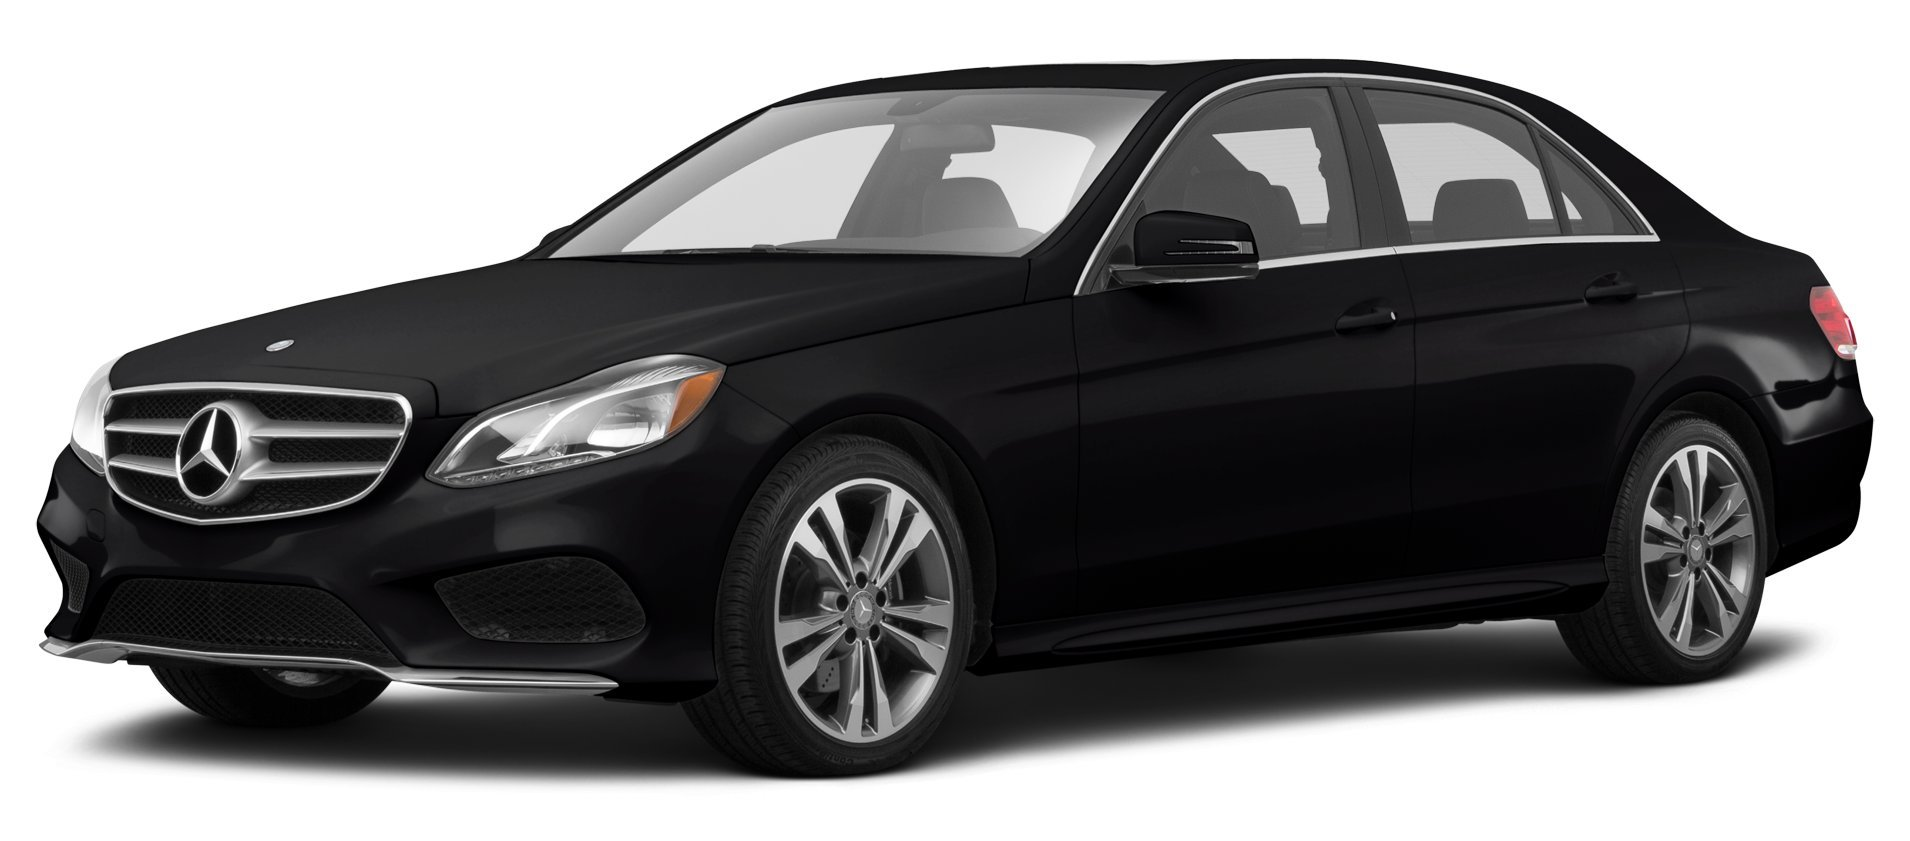 2016 mercedes benz e350 reviews images and for Mercedes benz 4matic meaning